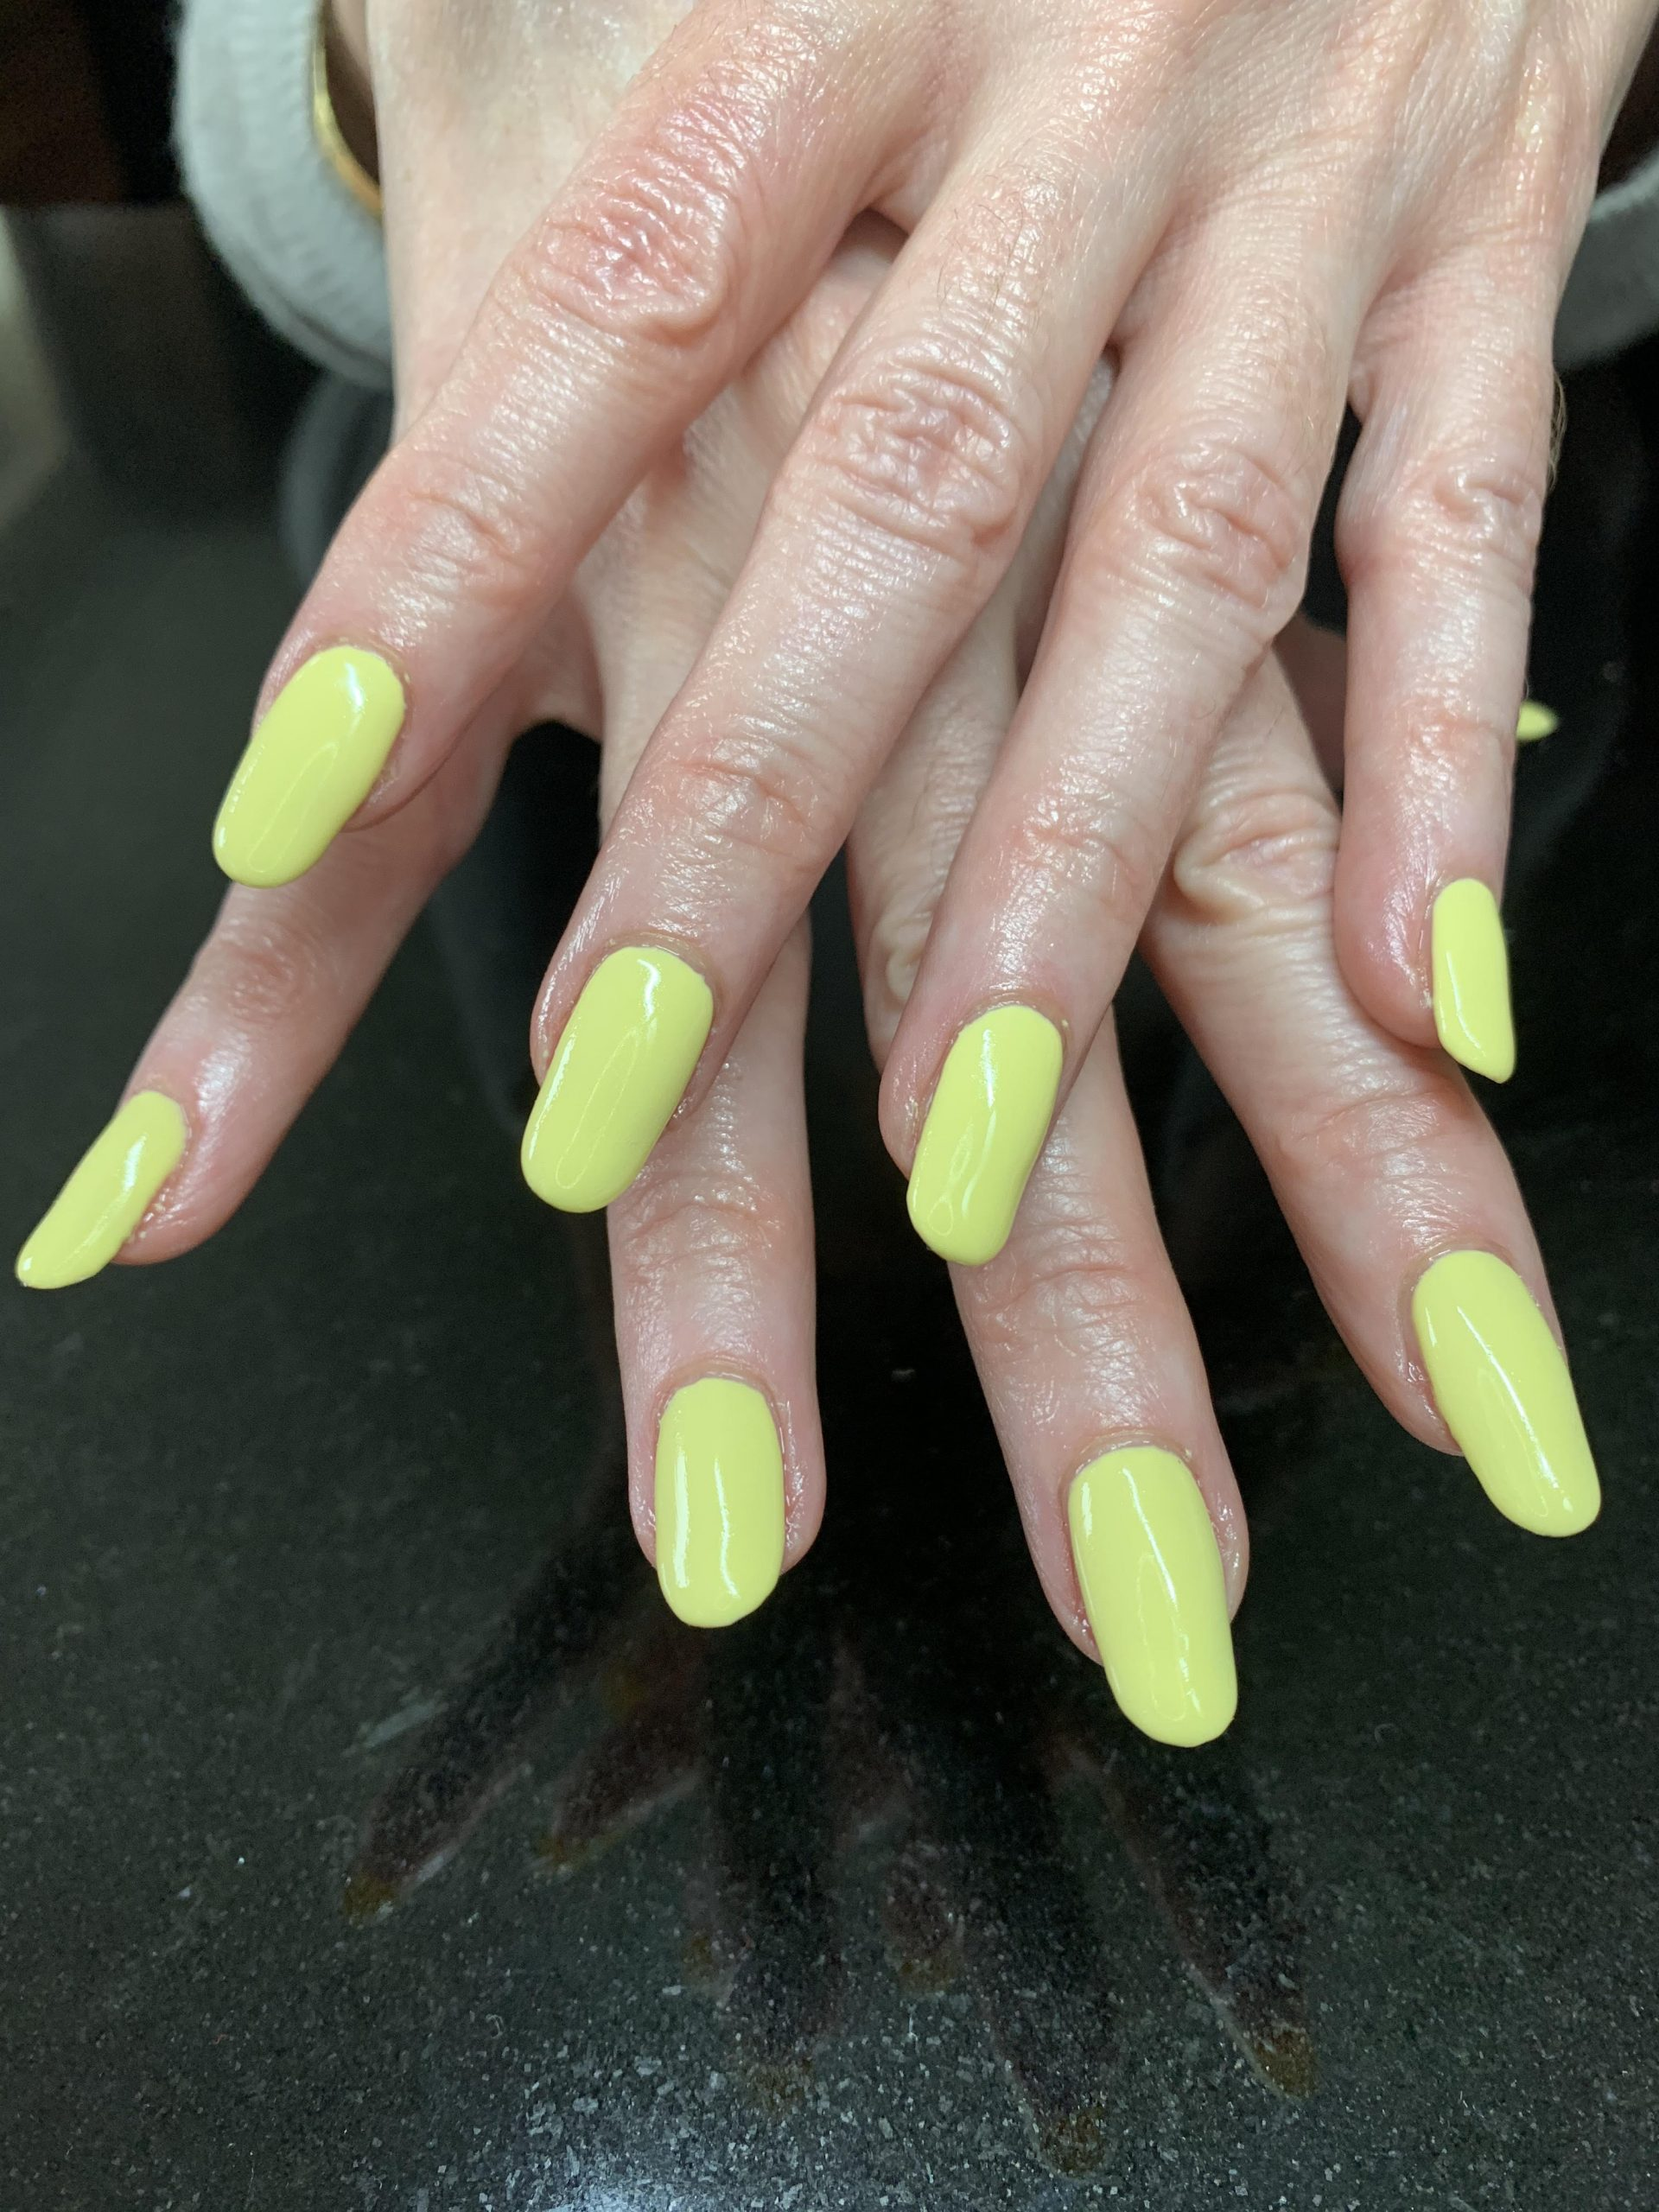 CND Shellac, yellow nails, nail art, nail pro, nail artist, nail technician, gel nails, shellac nails, acrylic nails, ware, mobile